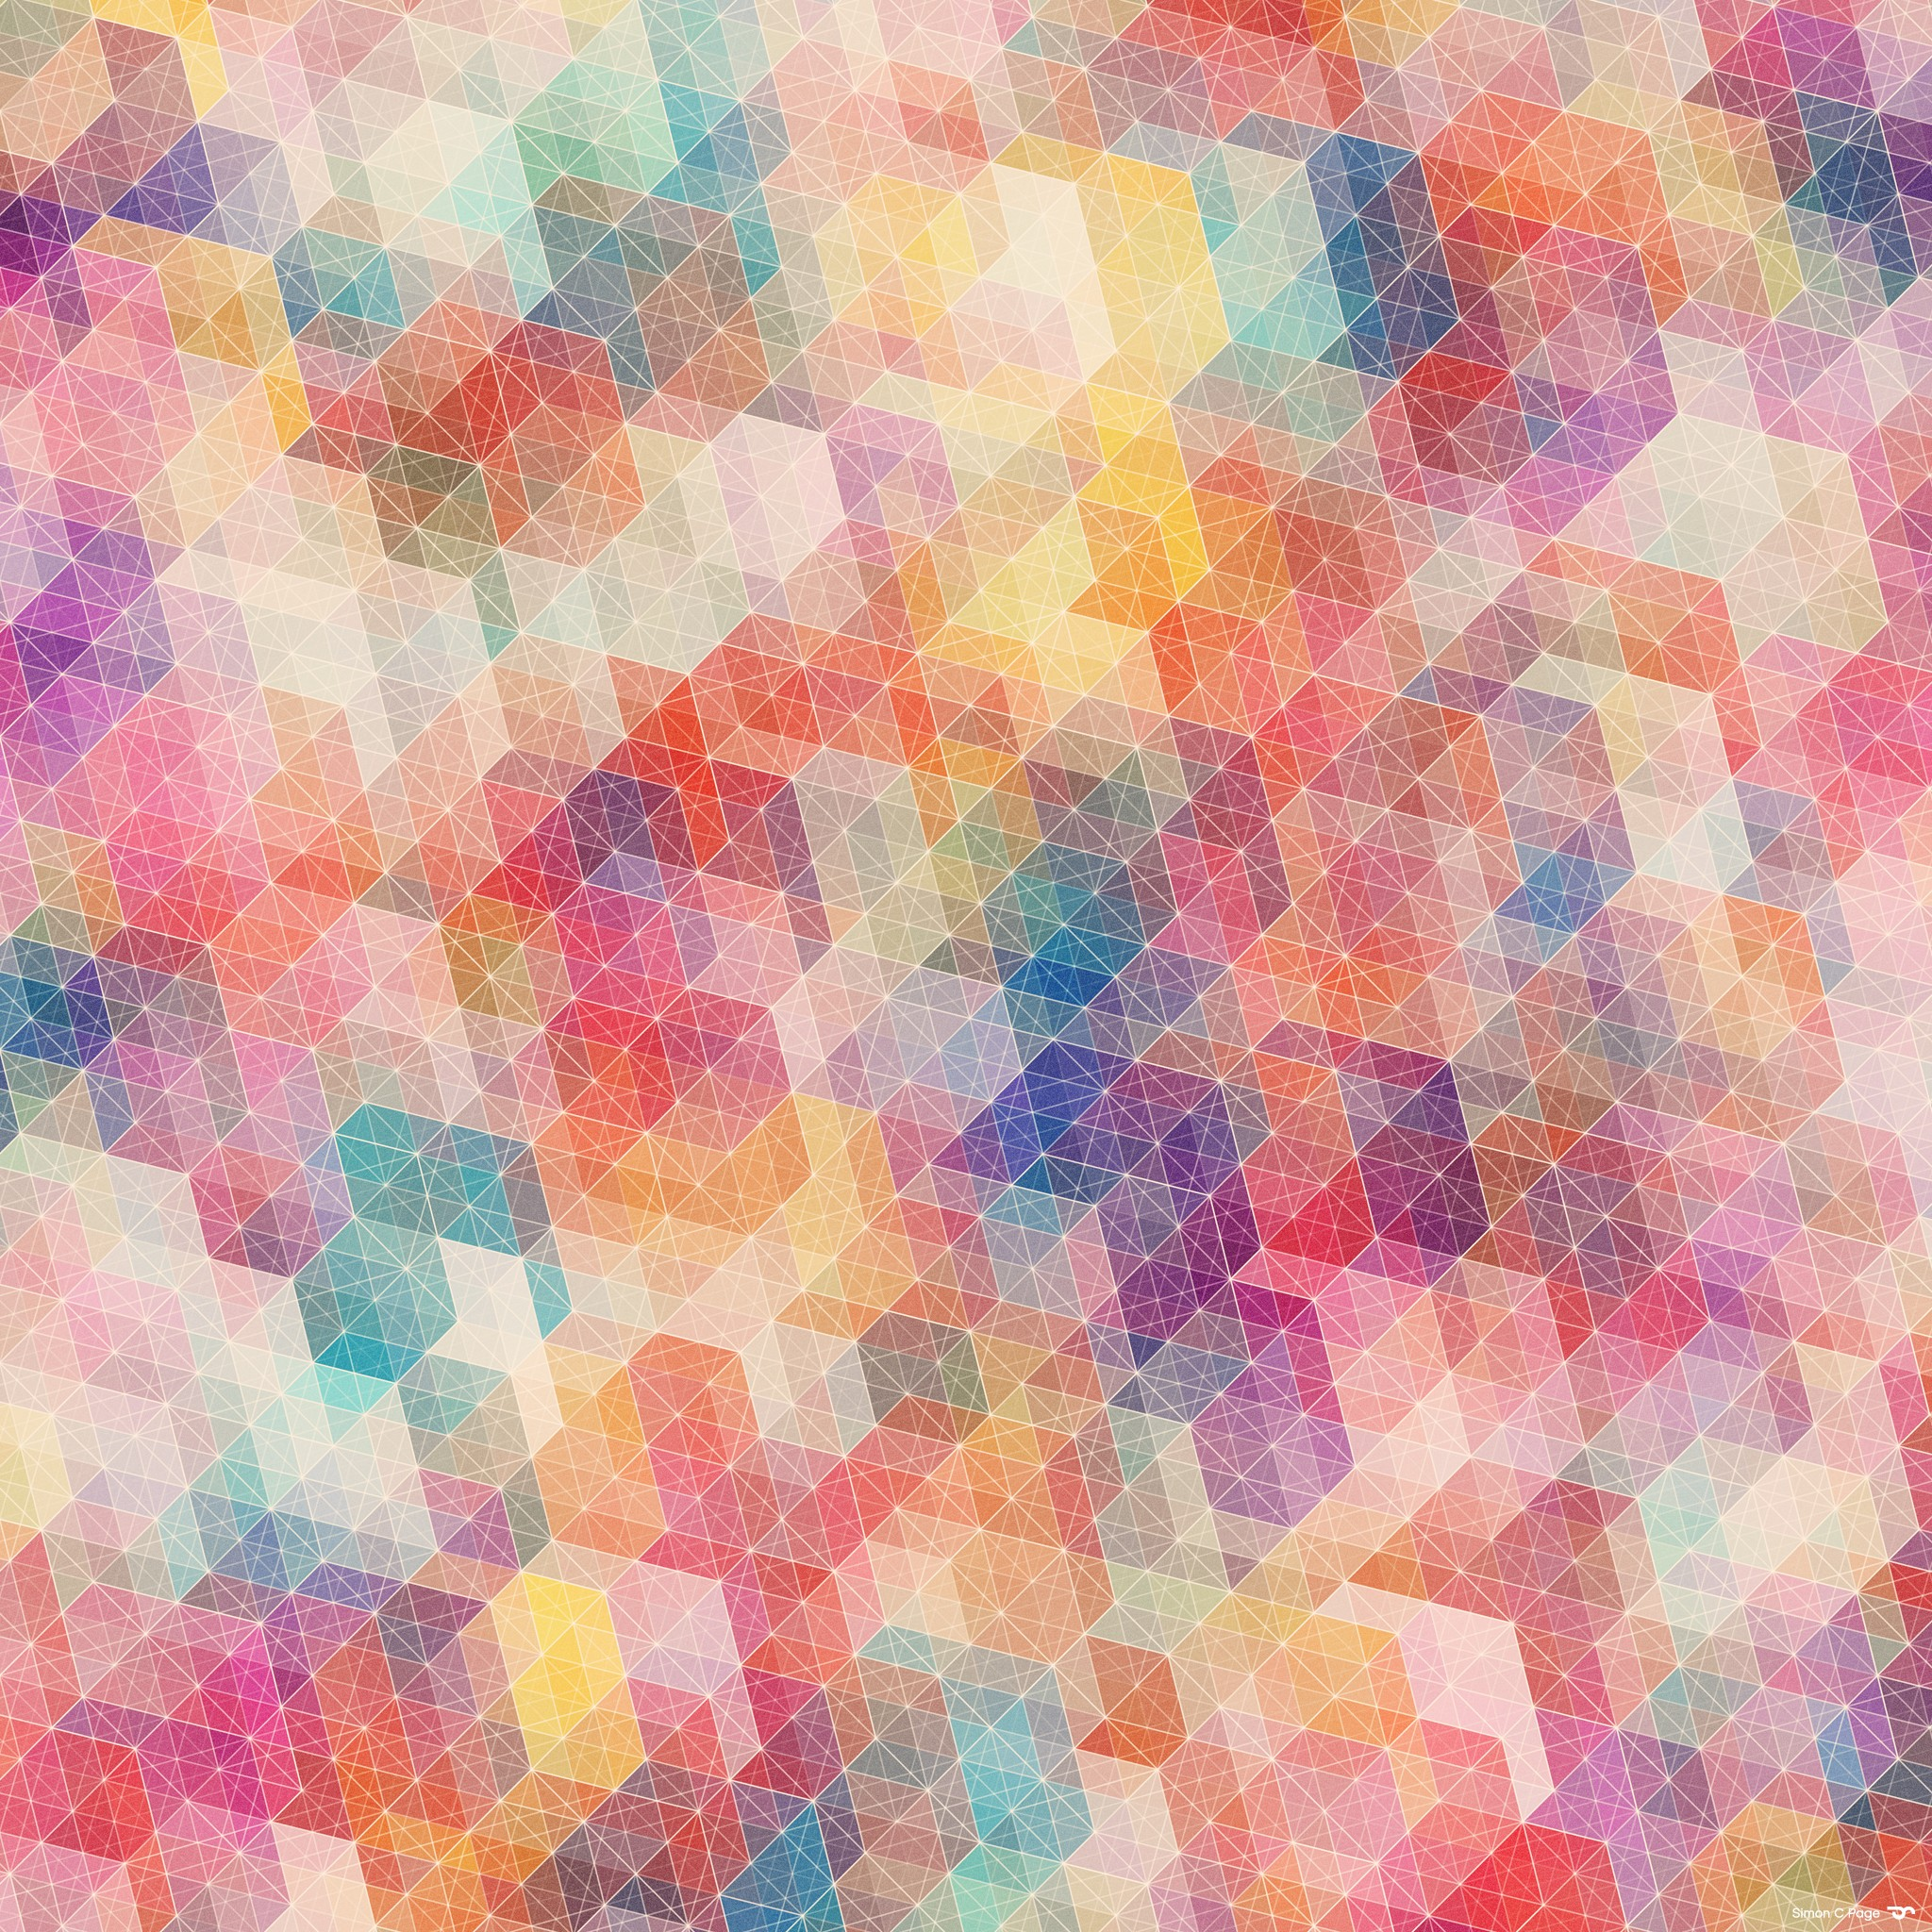 35+ Geometric Backgrounds ·① Download Free Full HD